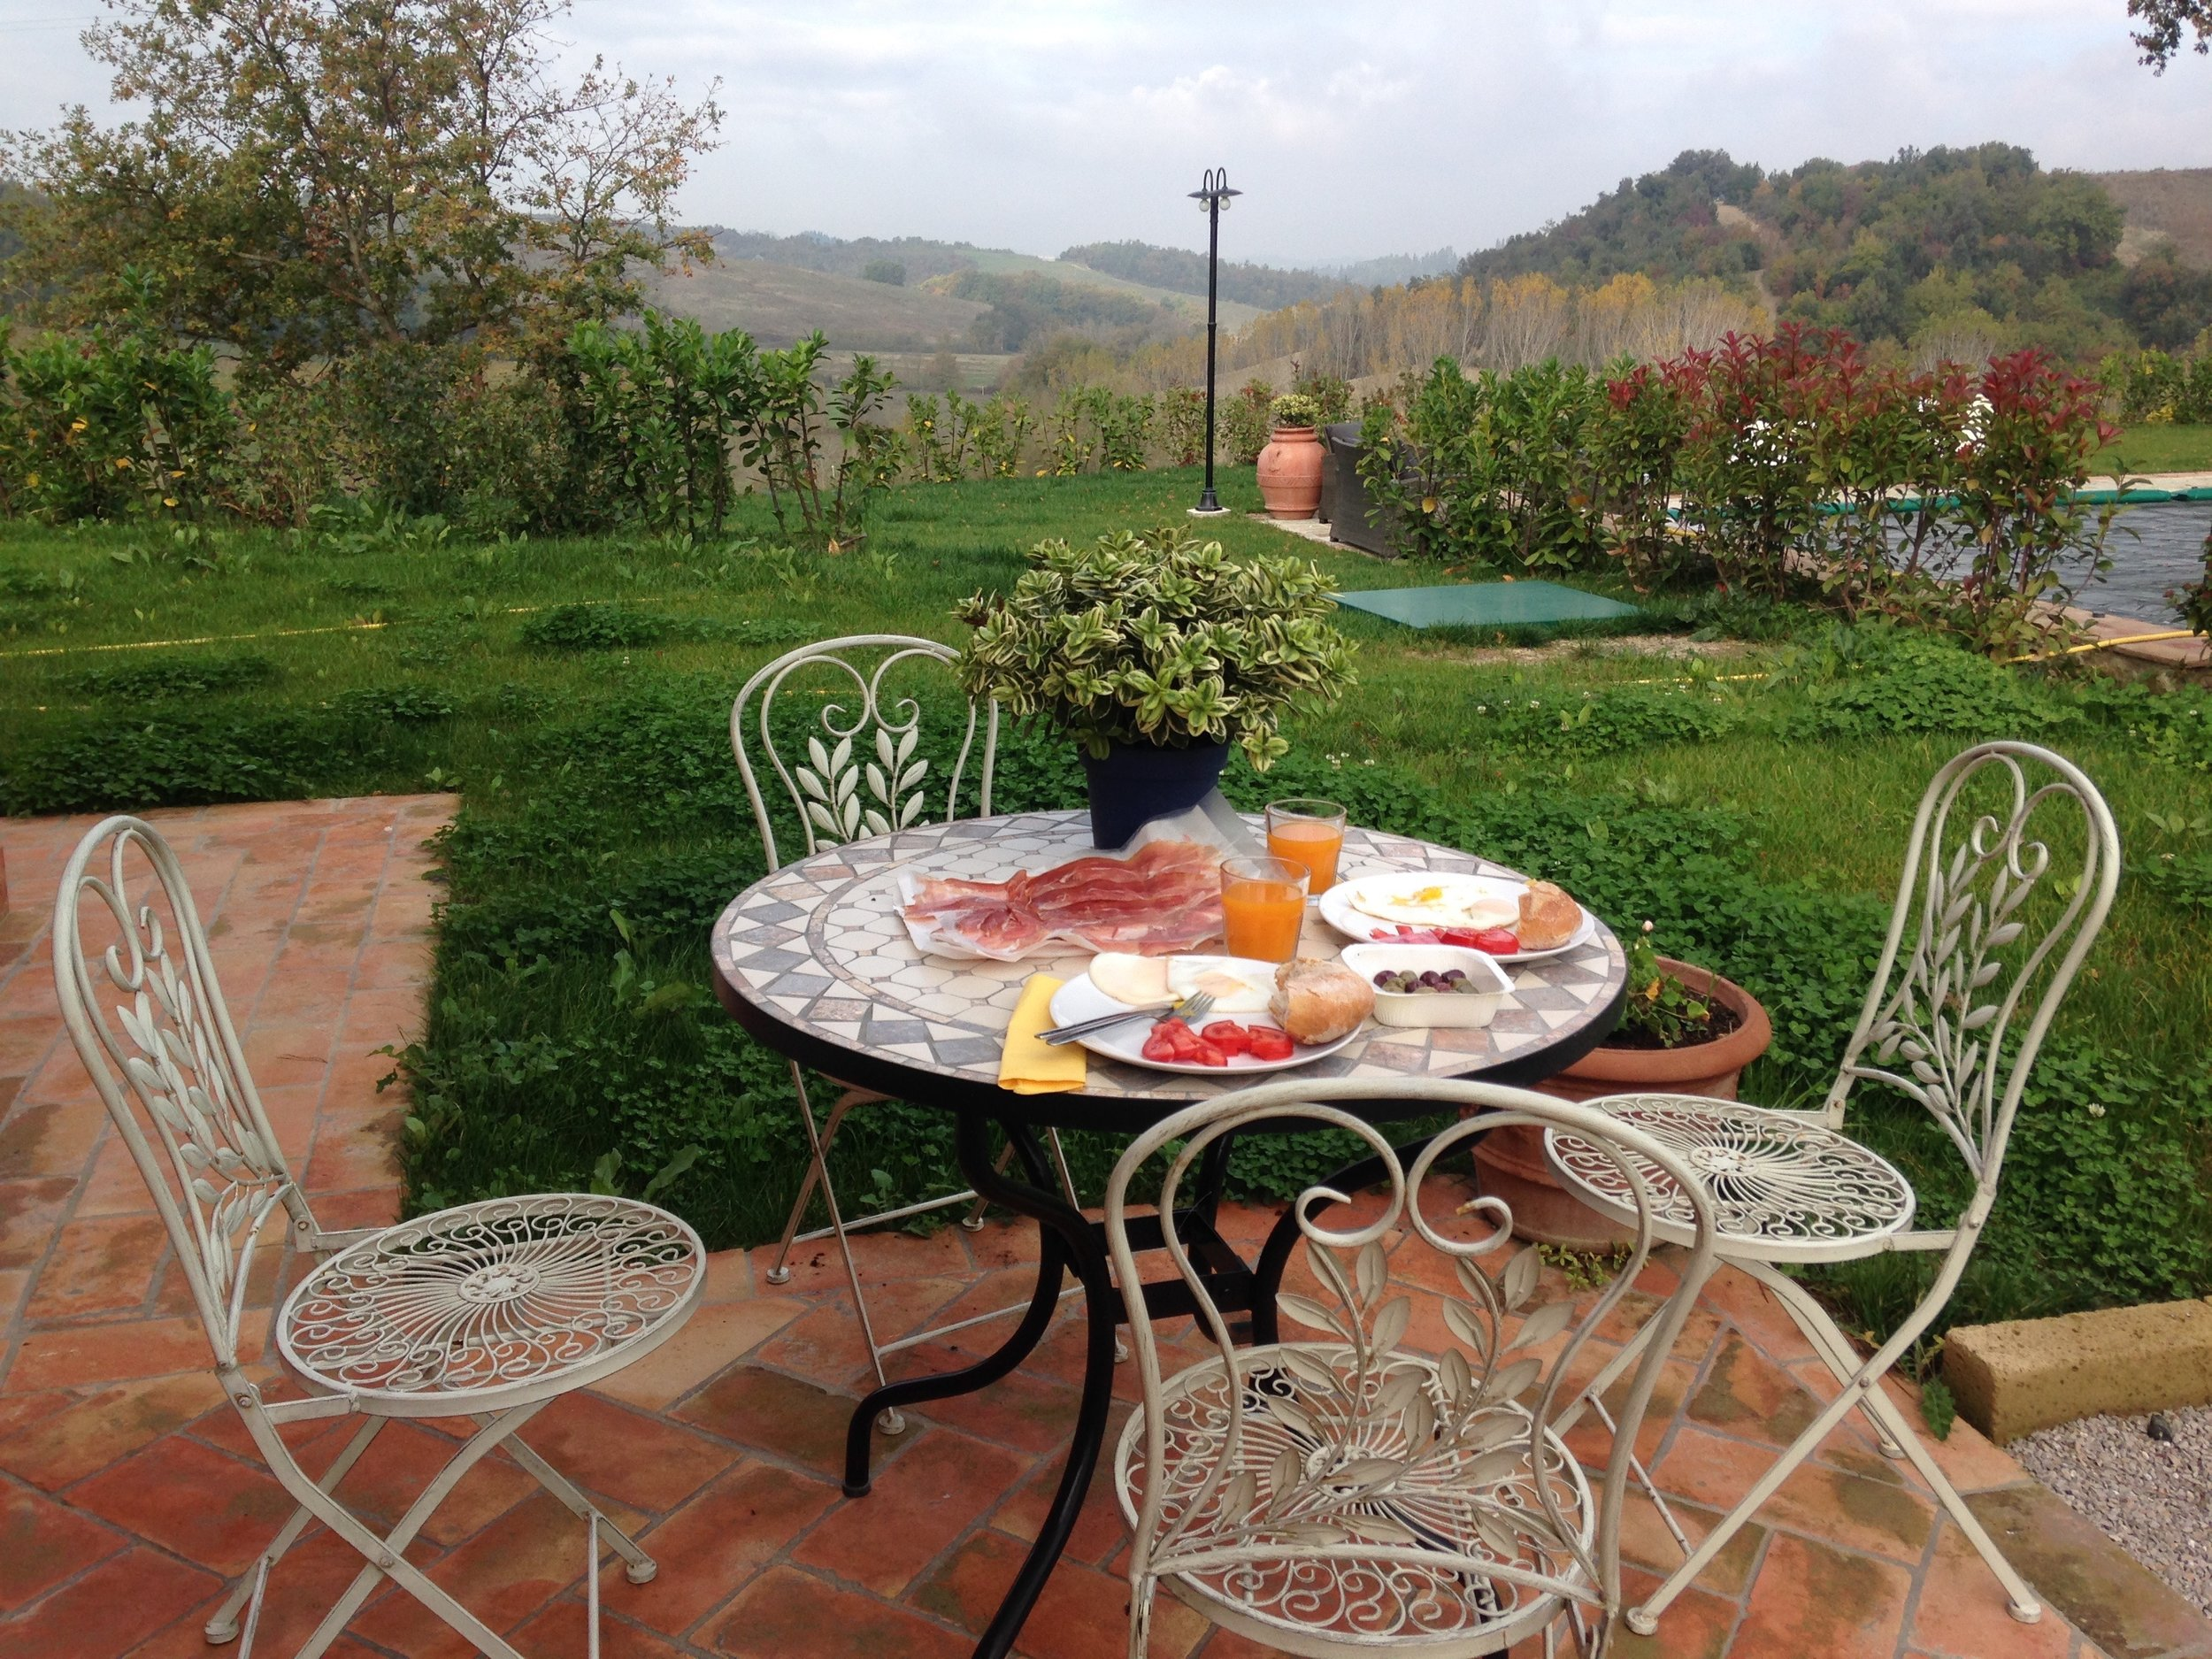 Breakfast at Agriturismo Maramaldo